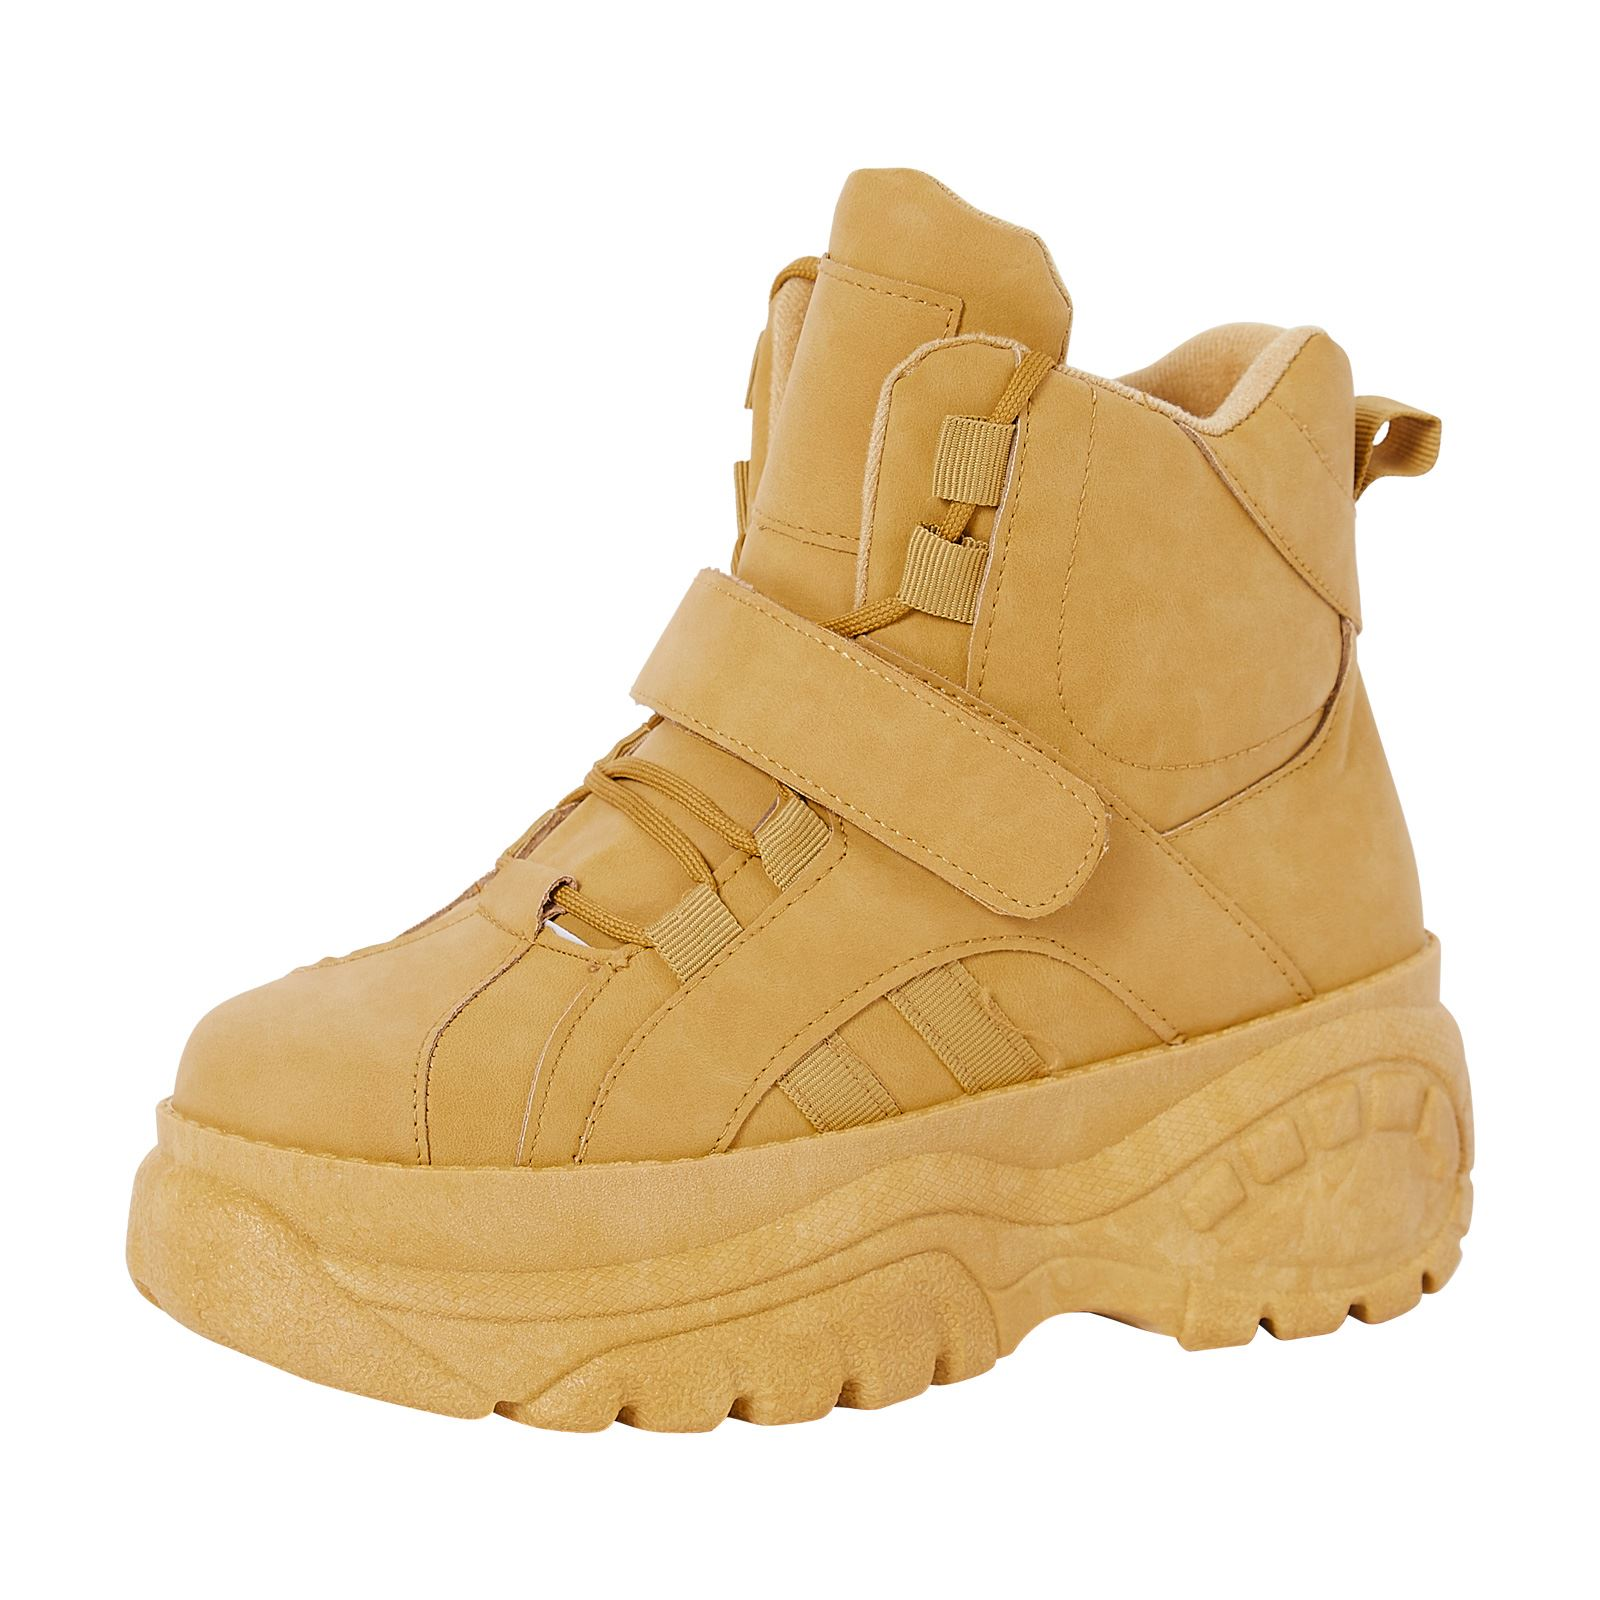 NEW-WOMENS-SHOES-LADIES-HI-TOP-CHUNKY-TRAINERS-TRENDY-SNEAKERS-CASUAL-SIZE-STYLE